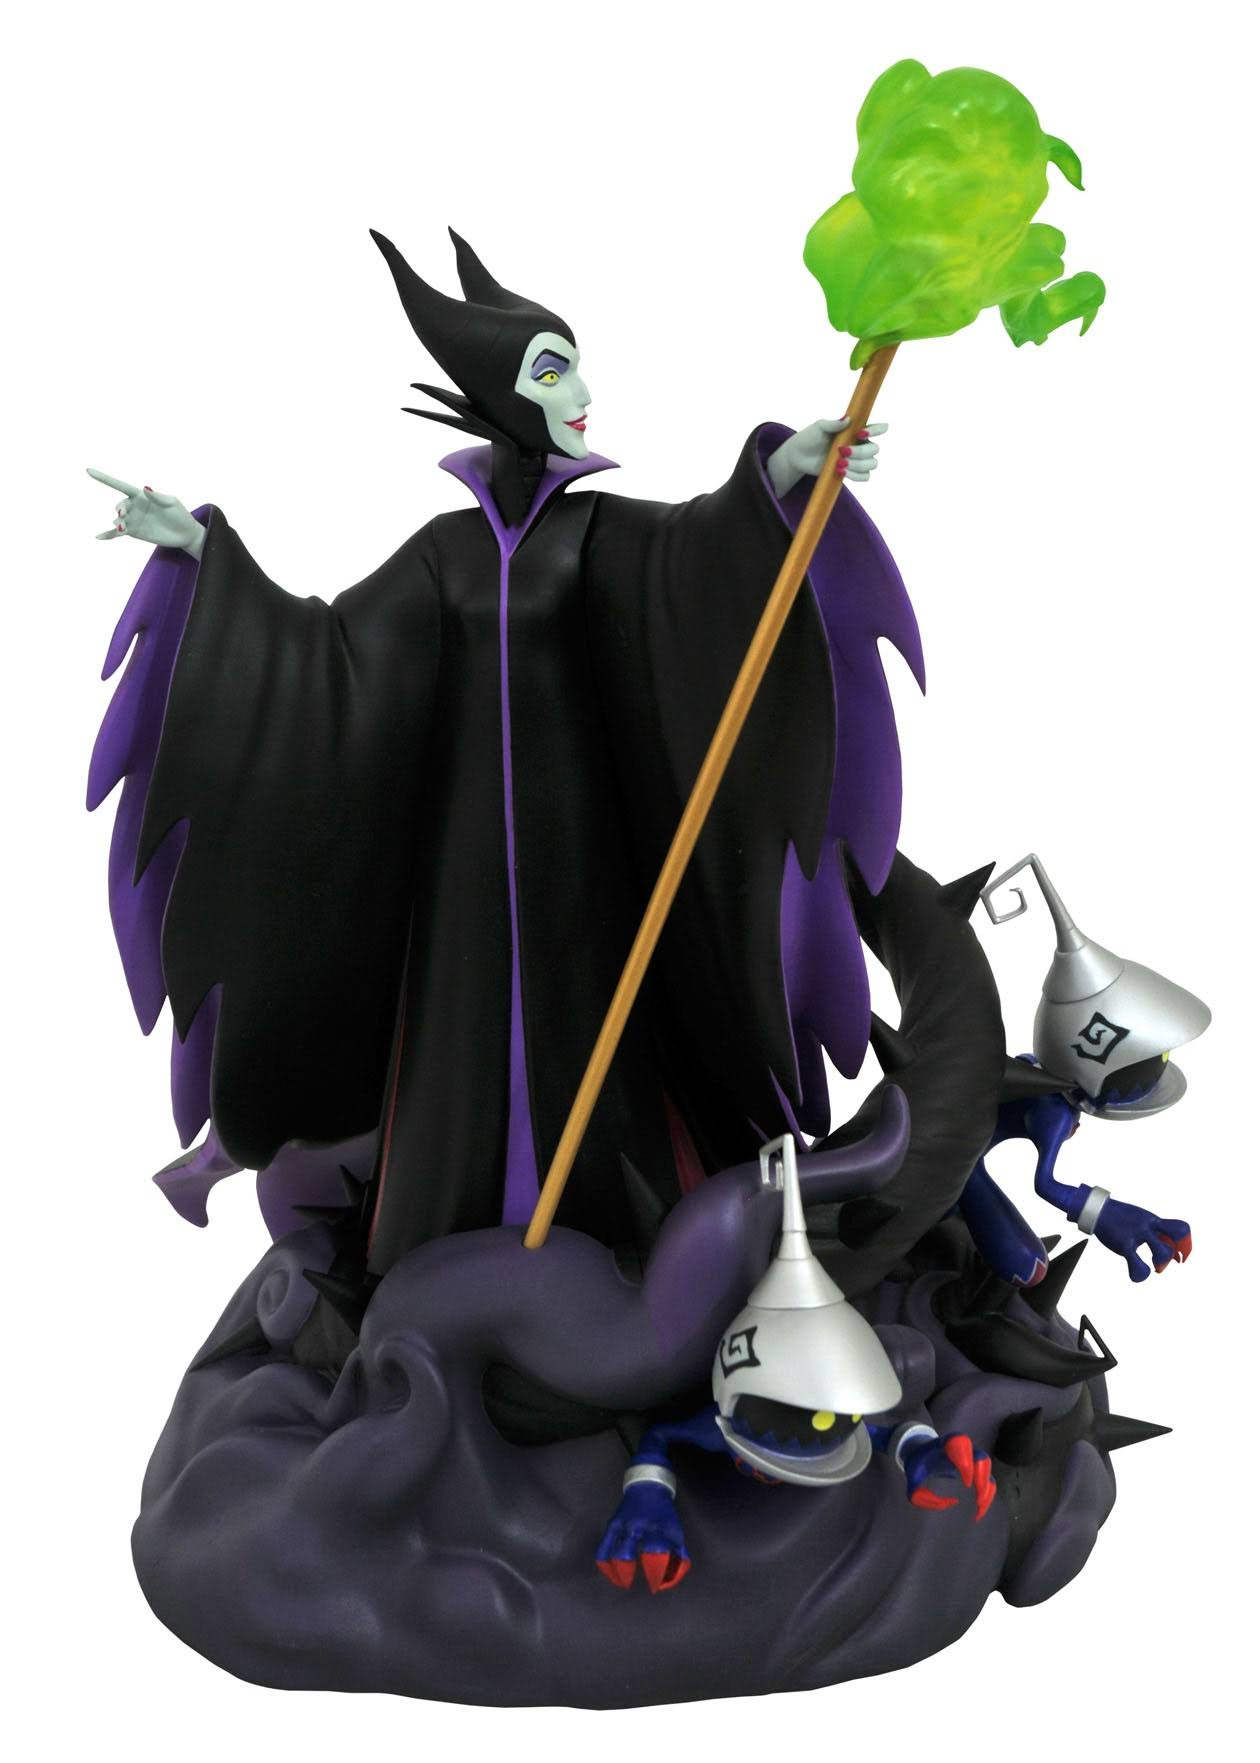 Disney Kingdom Hearts Statue - Maleficent, 11""